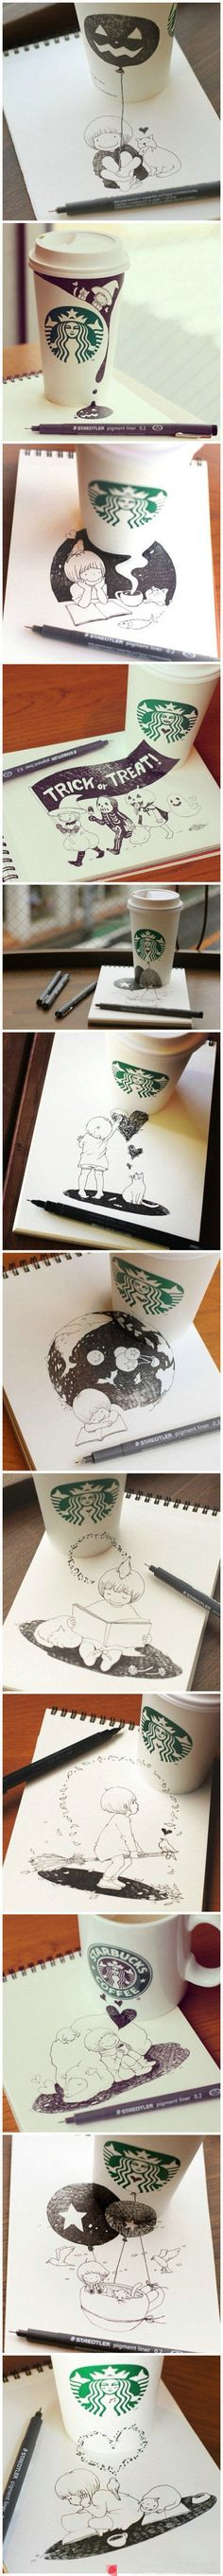 beautiful and imaginative coffee cup art